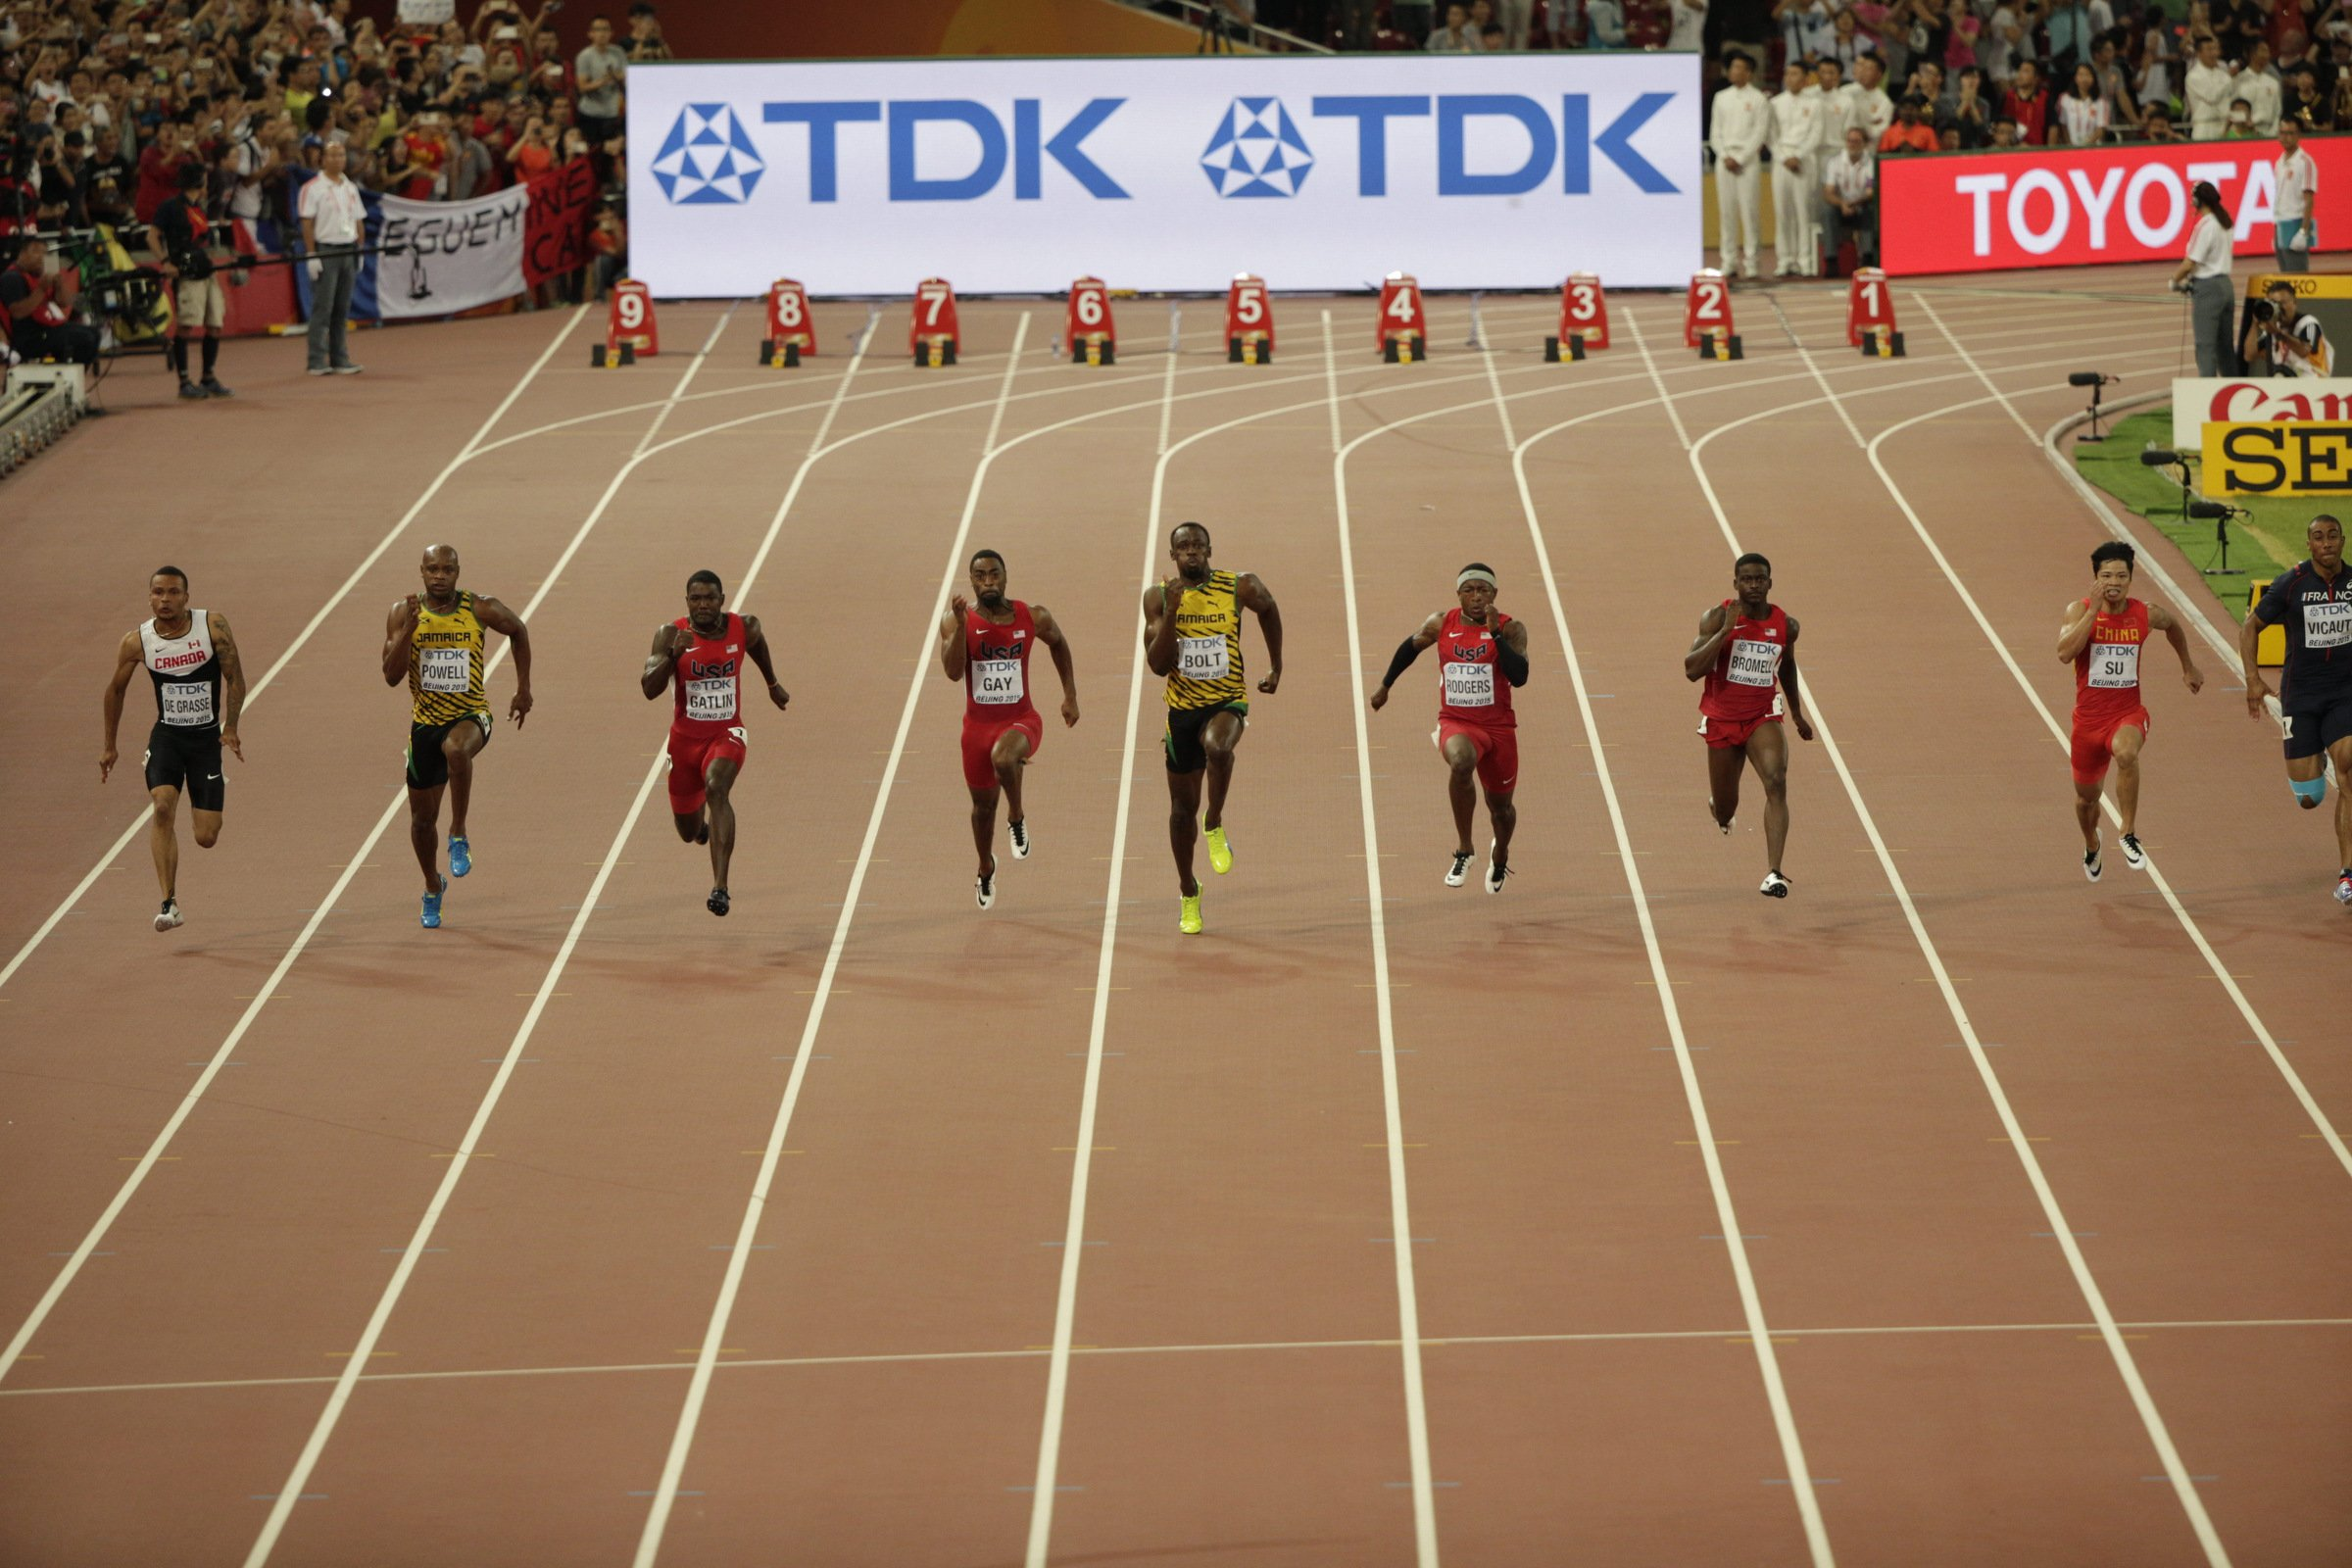 Justin Gatlin (USA) ahead in the early stages of the men's 100-meter final.